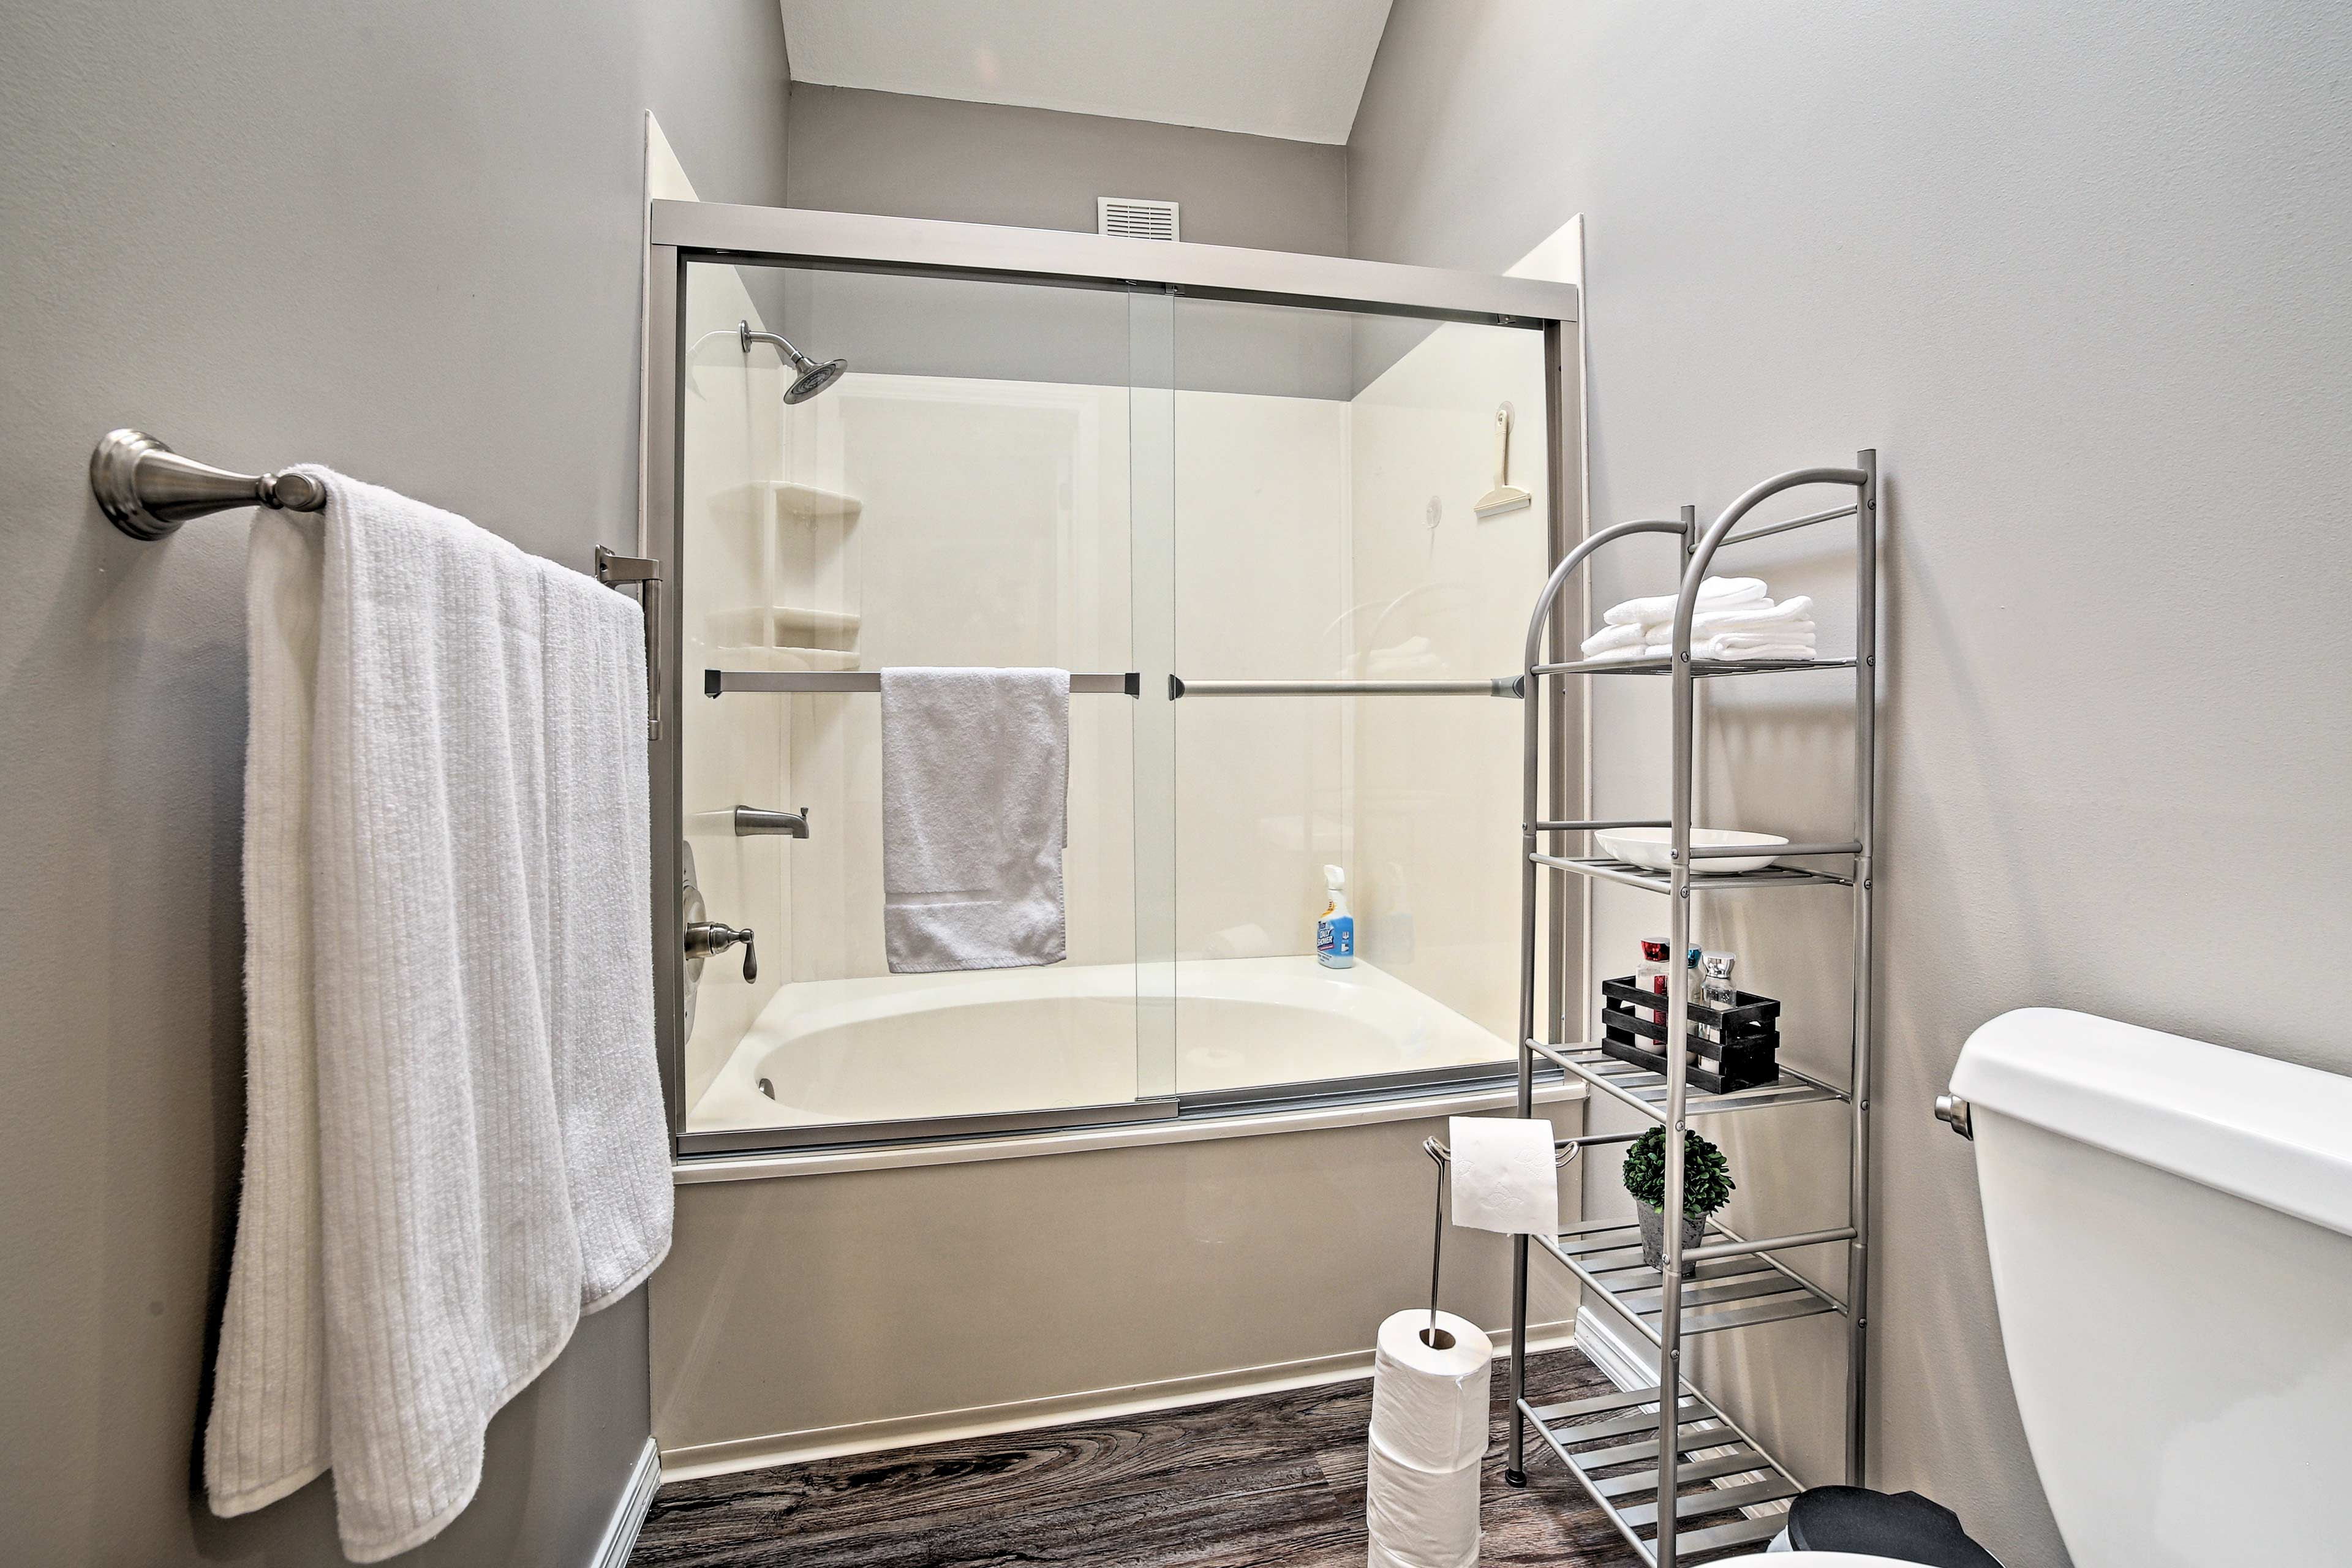 Take a relaxing soak in the jetted tub.